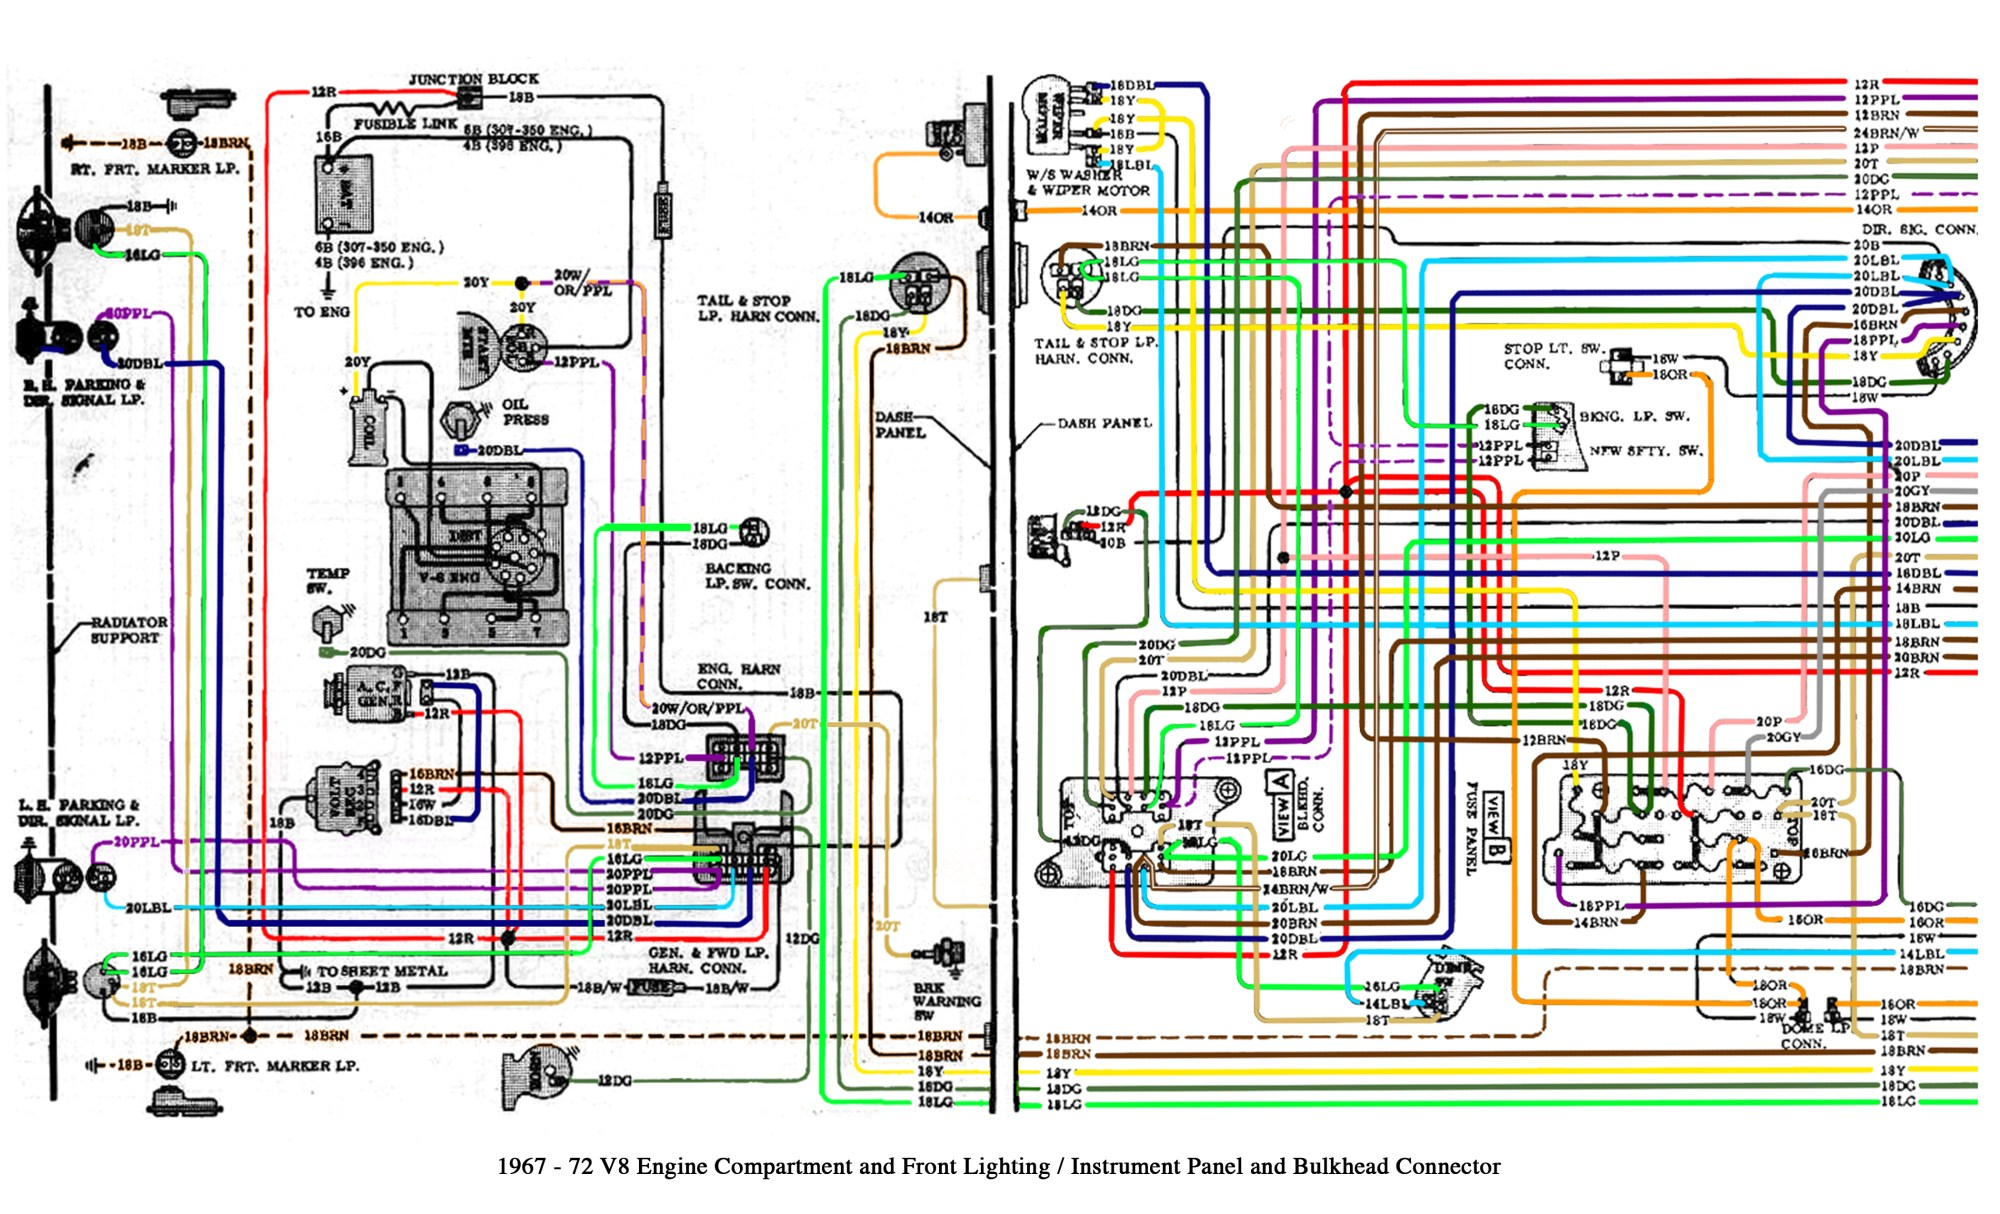 hight resolution of chevy truck wiring wiring diagram blogs classic truck wiring harness chevy truck wiring harness